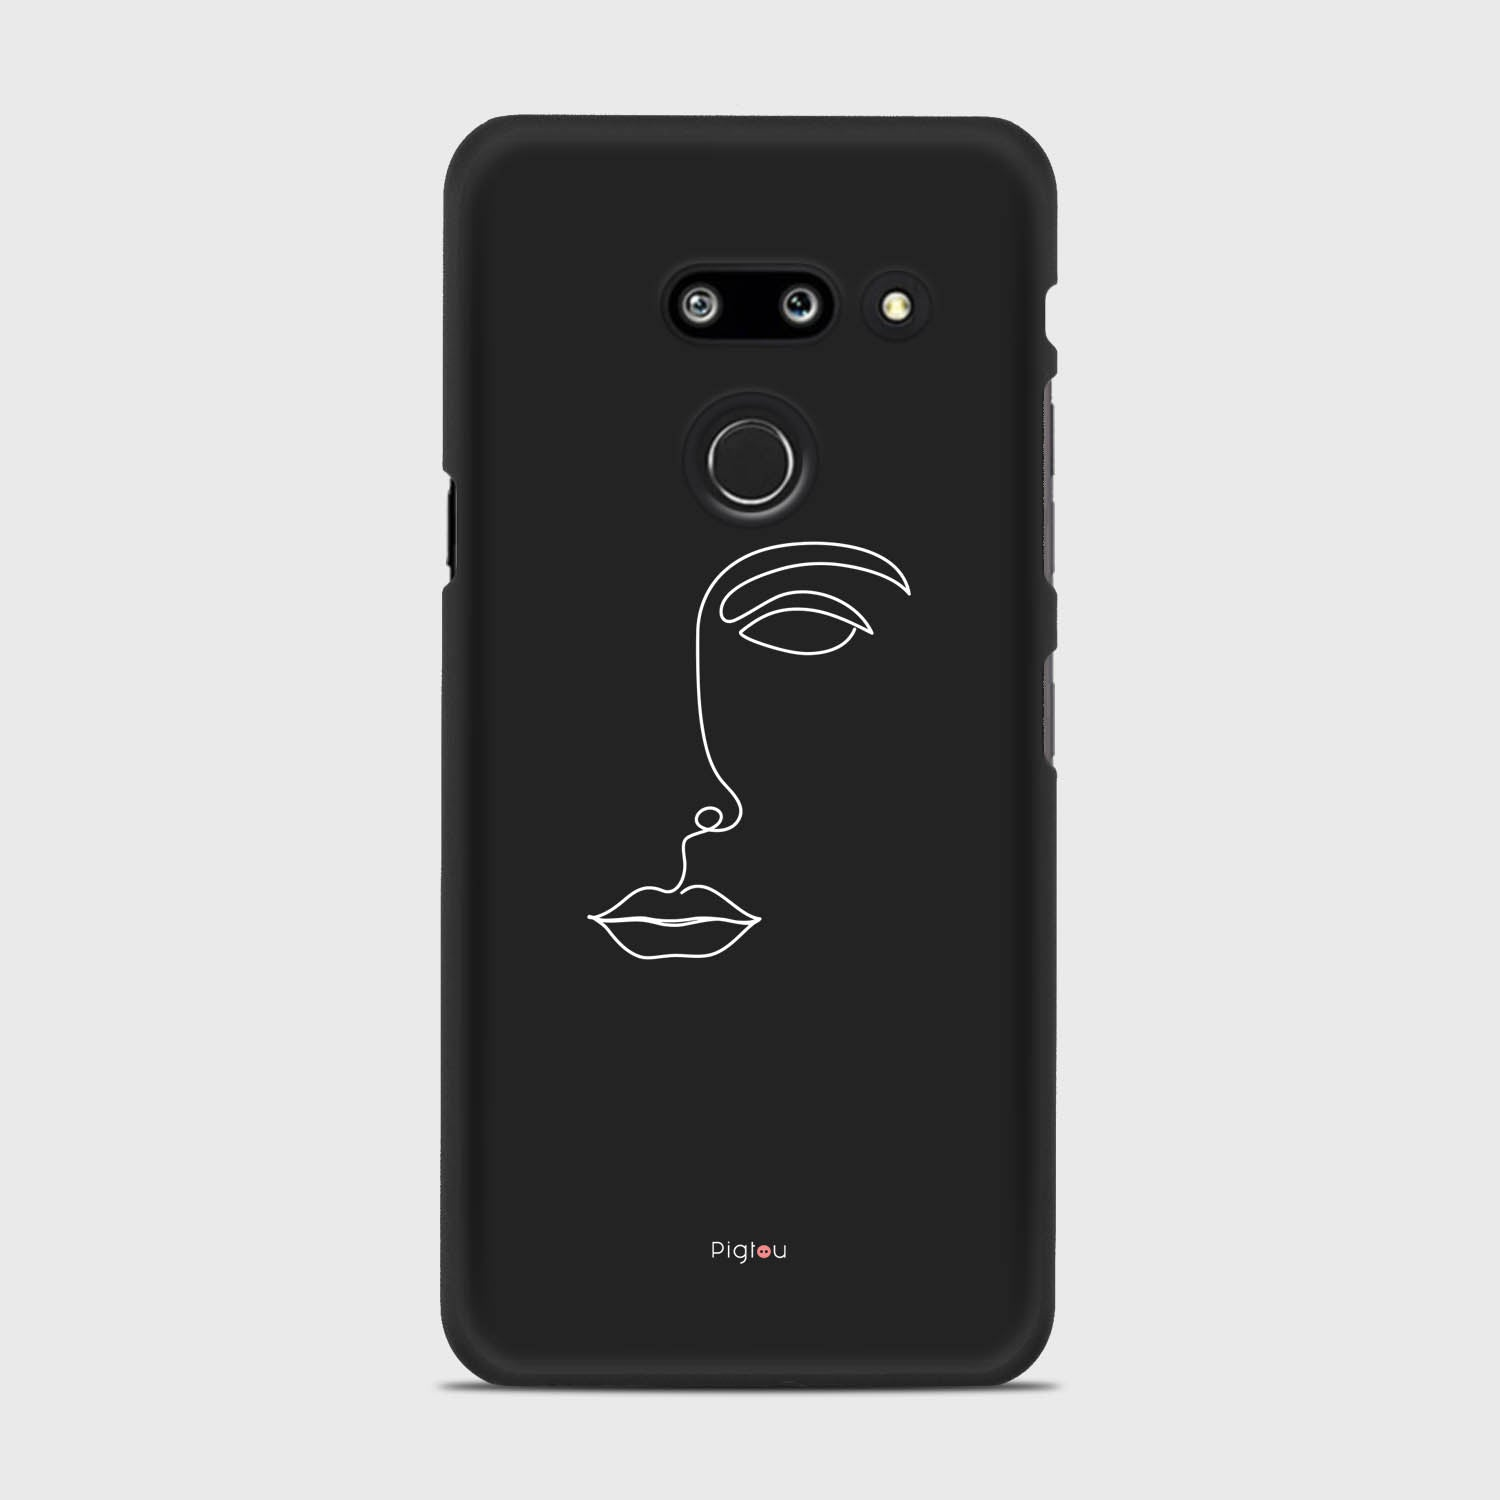 SILHOUETTE FACE LG G8 Thinq cases | Pigtou